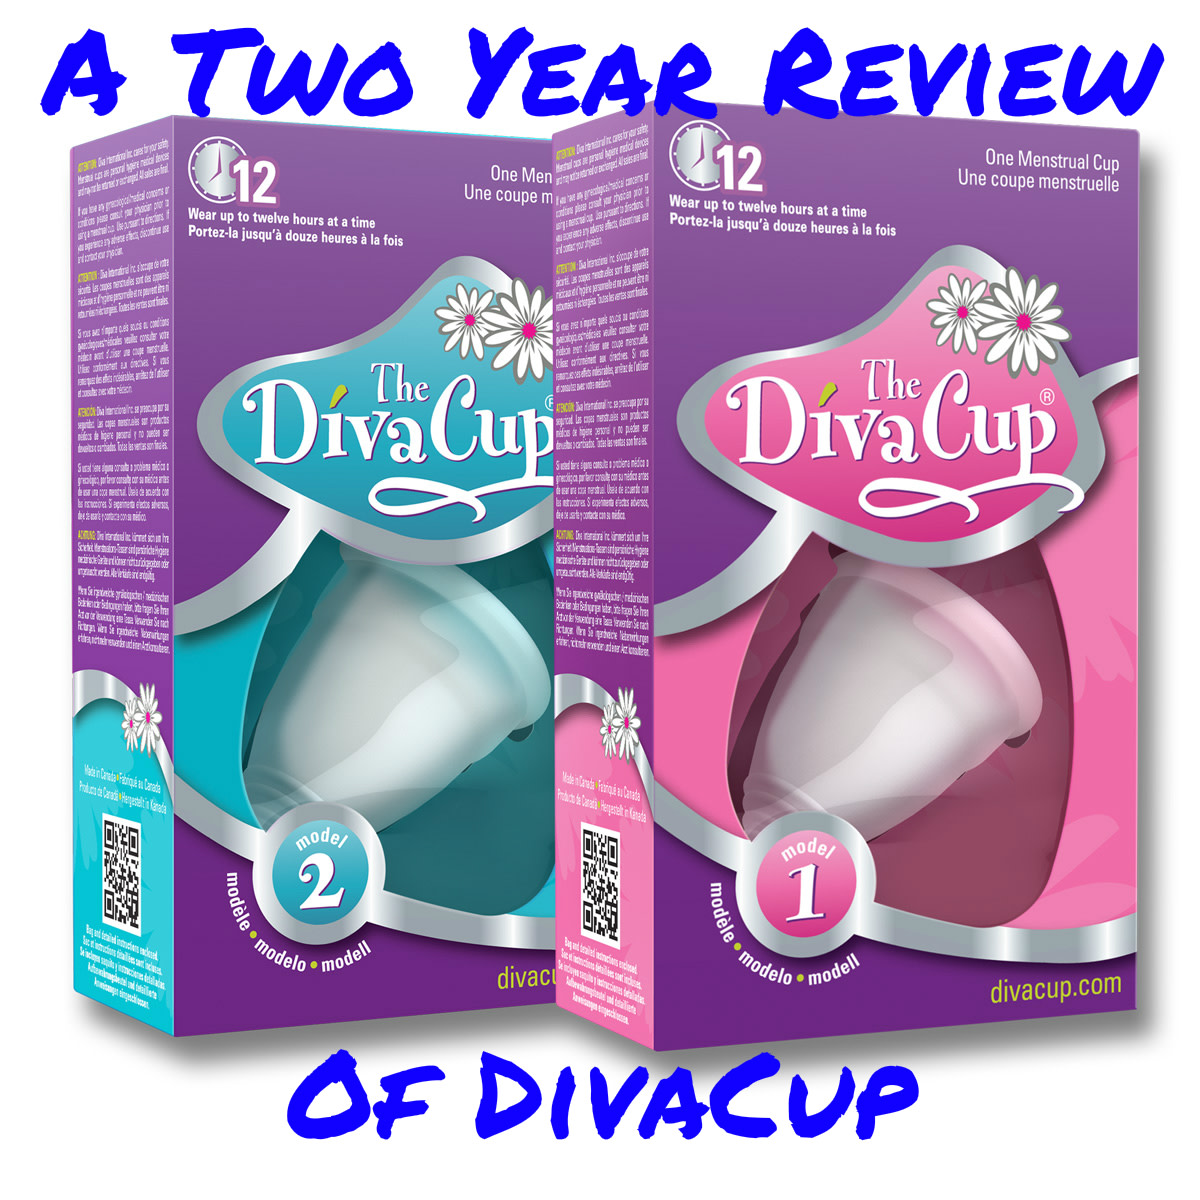 a-two-year-review-of-divacup